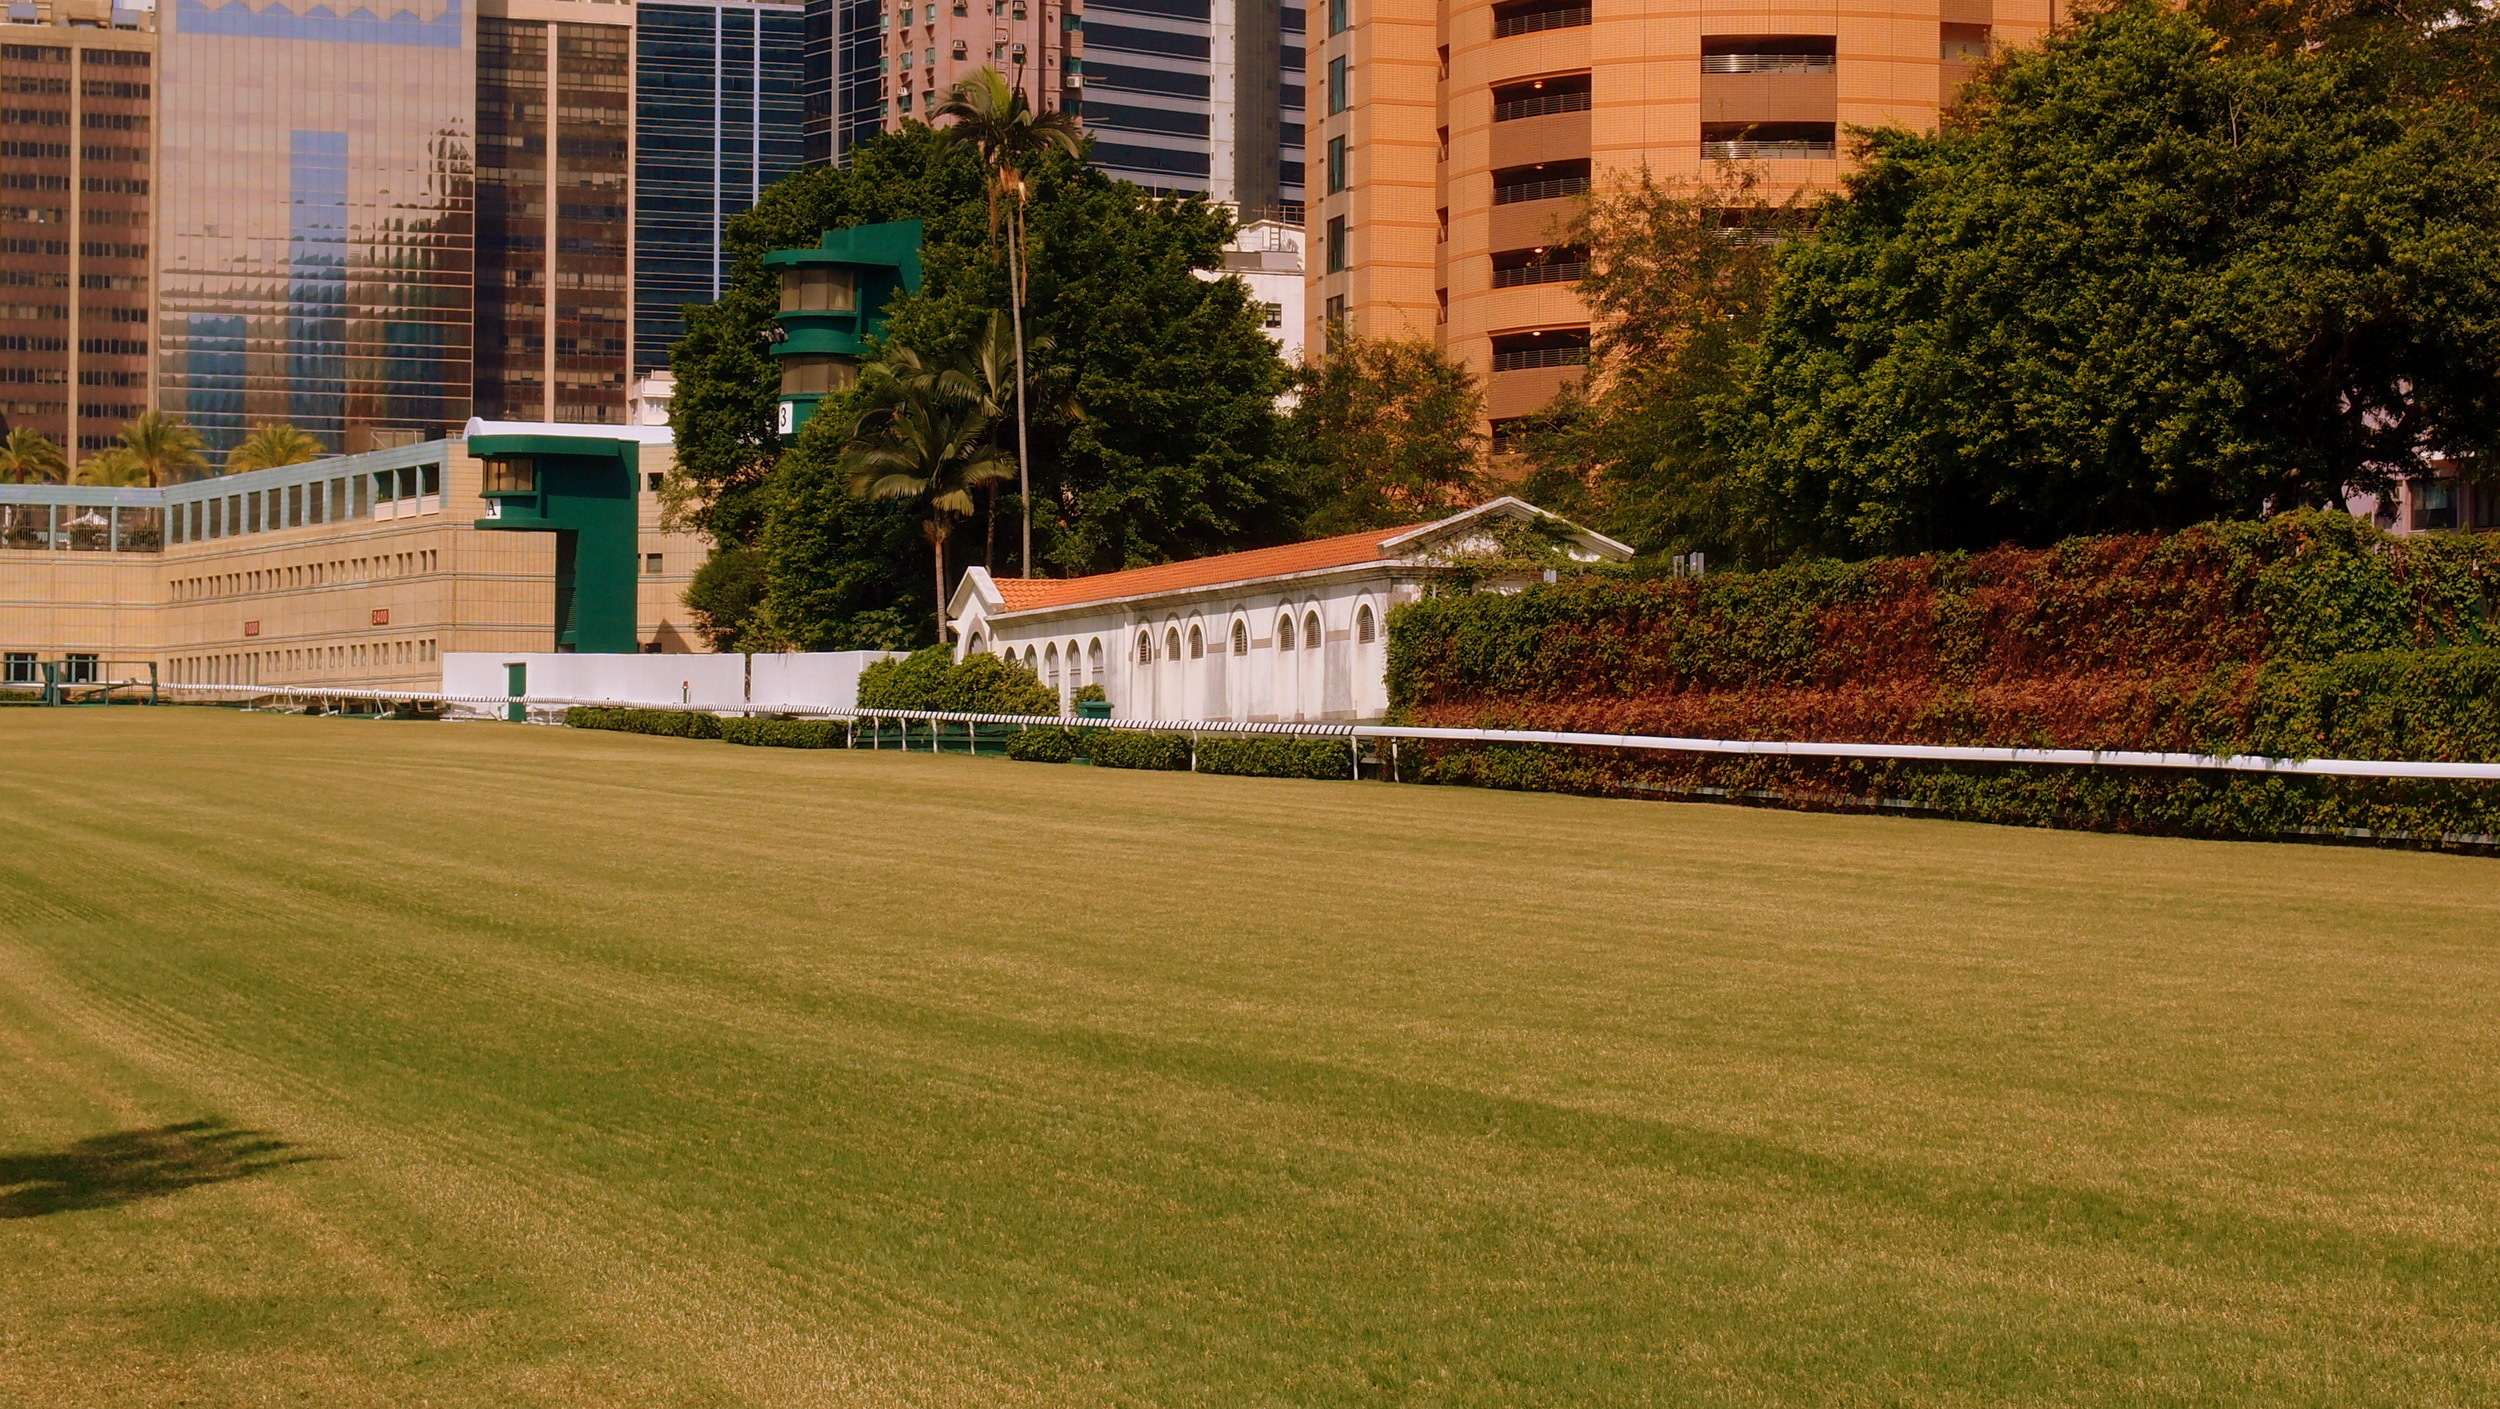 For those that want to touch the hallowed turf of the Happy Valley racetrack - I can arrange it!